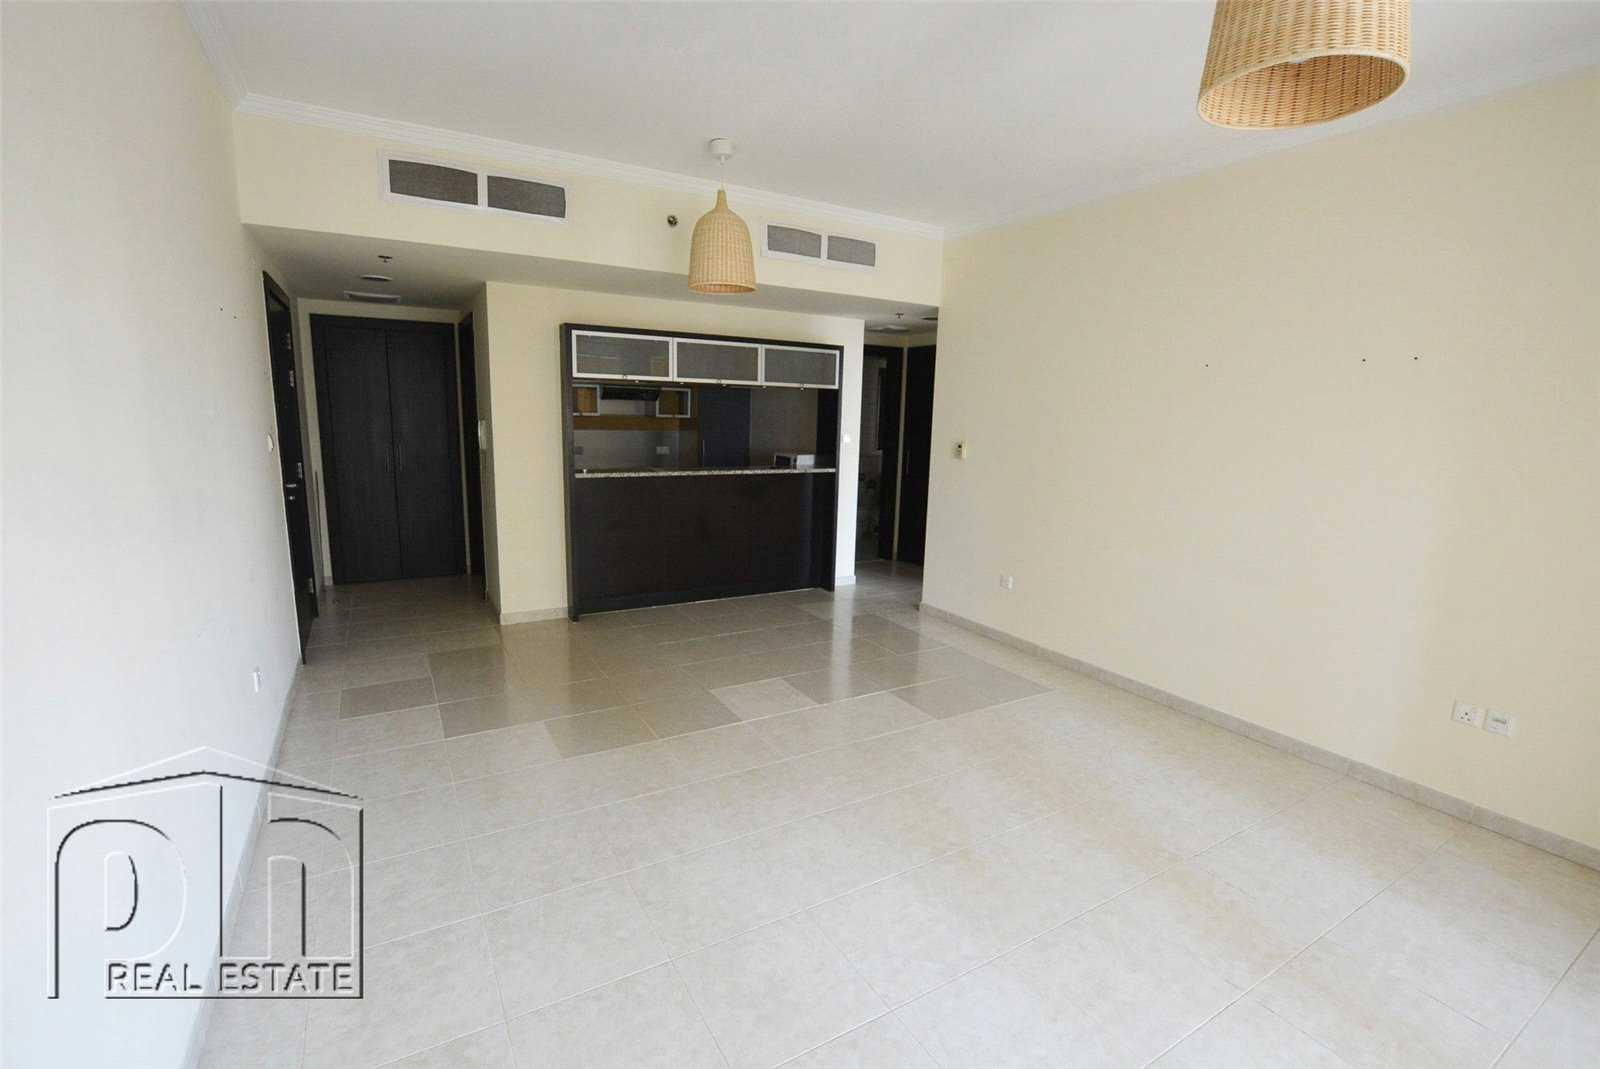 1 Bedroom / Unfurnished / Available Now